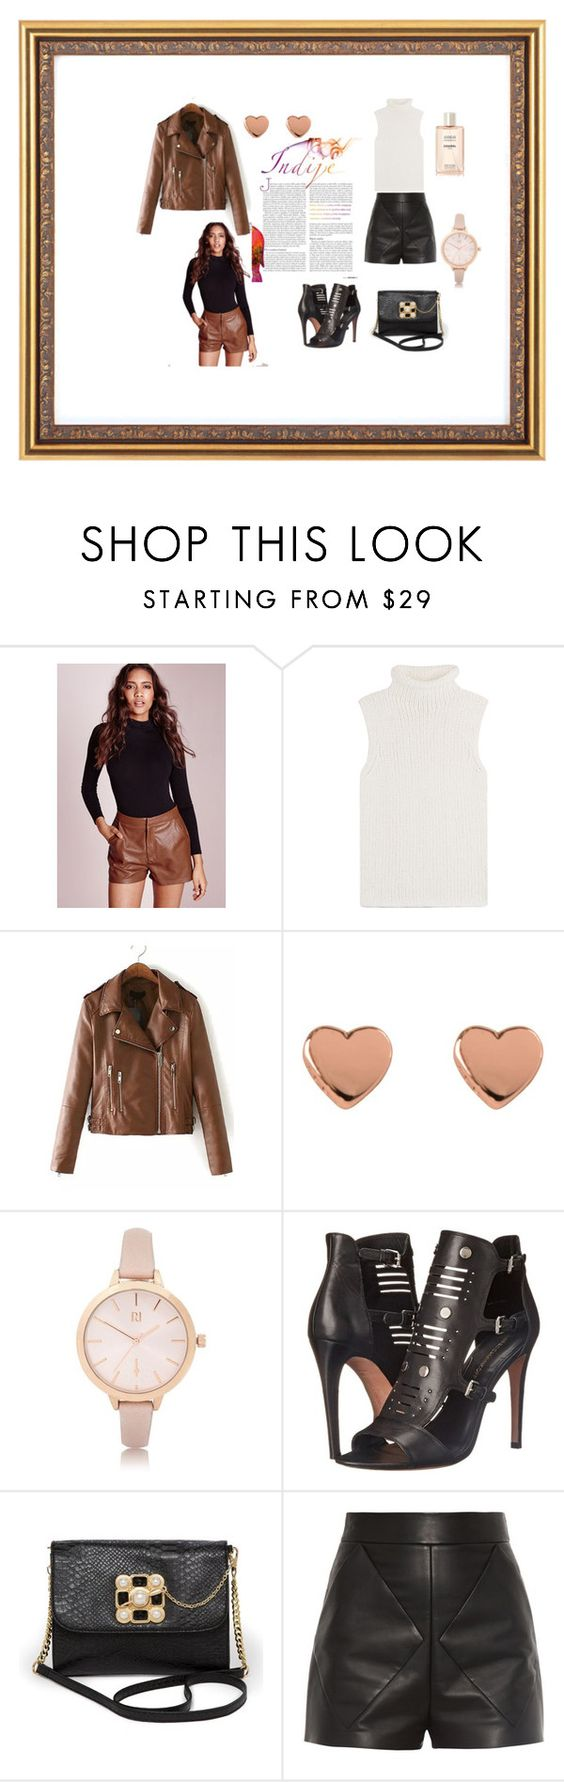 """""""sett"""" by mirzeta-017 ❤ liked on Polyvore featuring beauty, Missguided, Theory, Ted Baker, River Island, Rebecca Minkoff, Bebe and Balenciaga"""